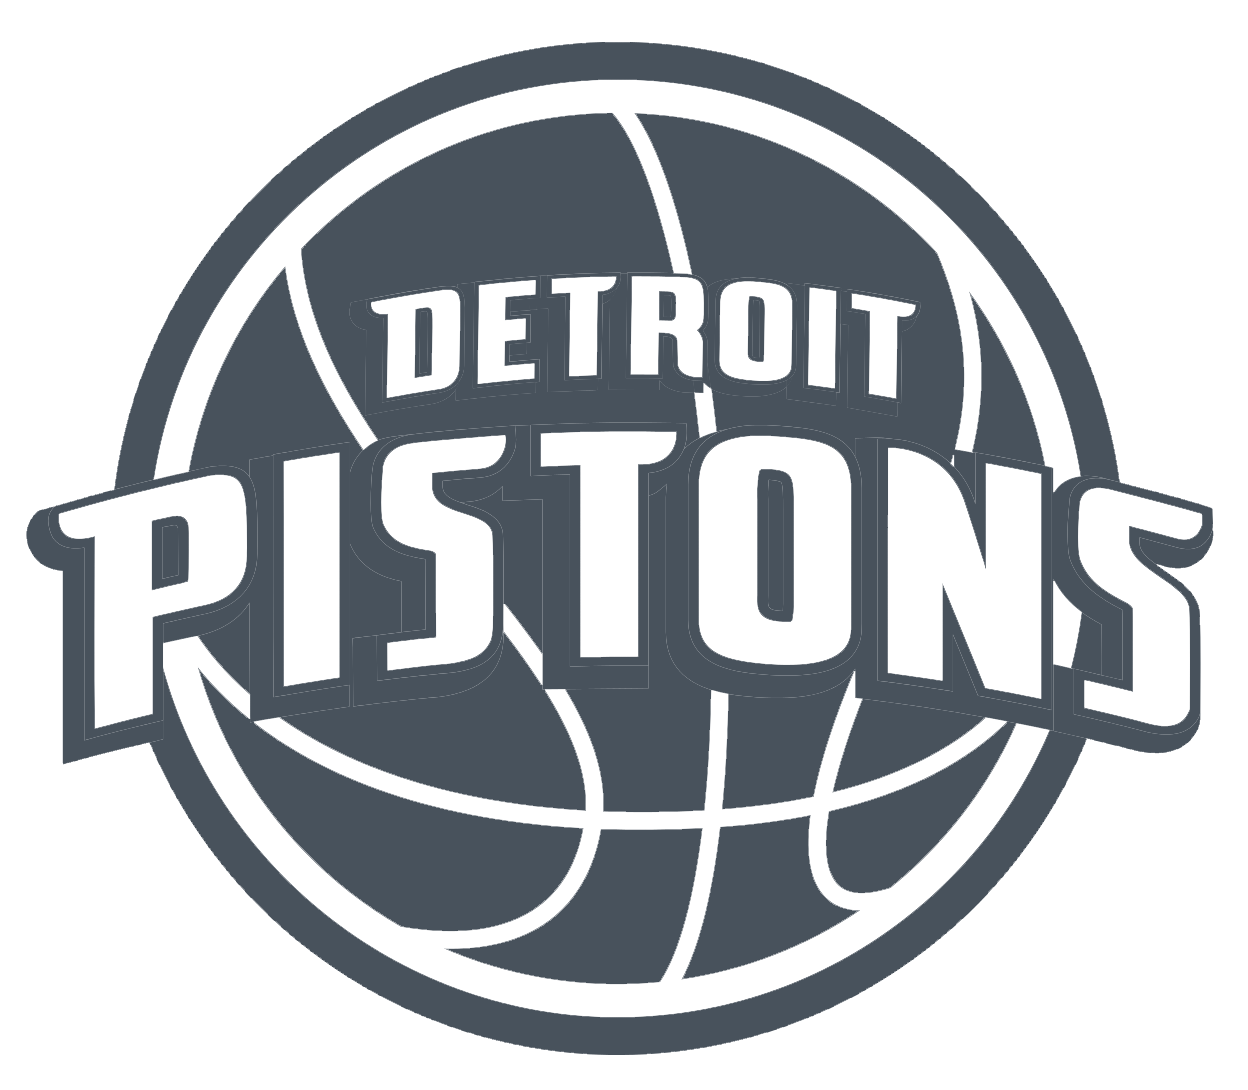 Area Pistons Lakers Angeles Los Detroit Text PNG Image